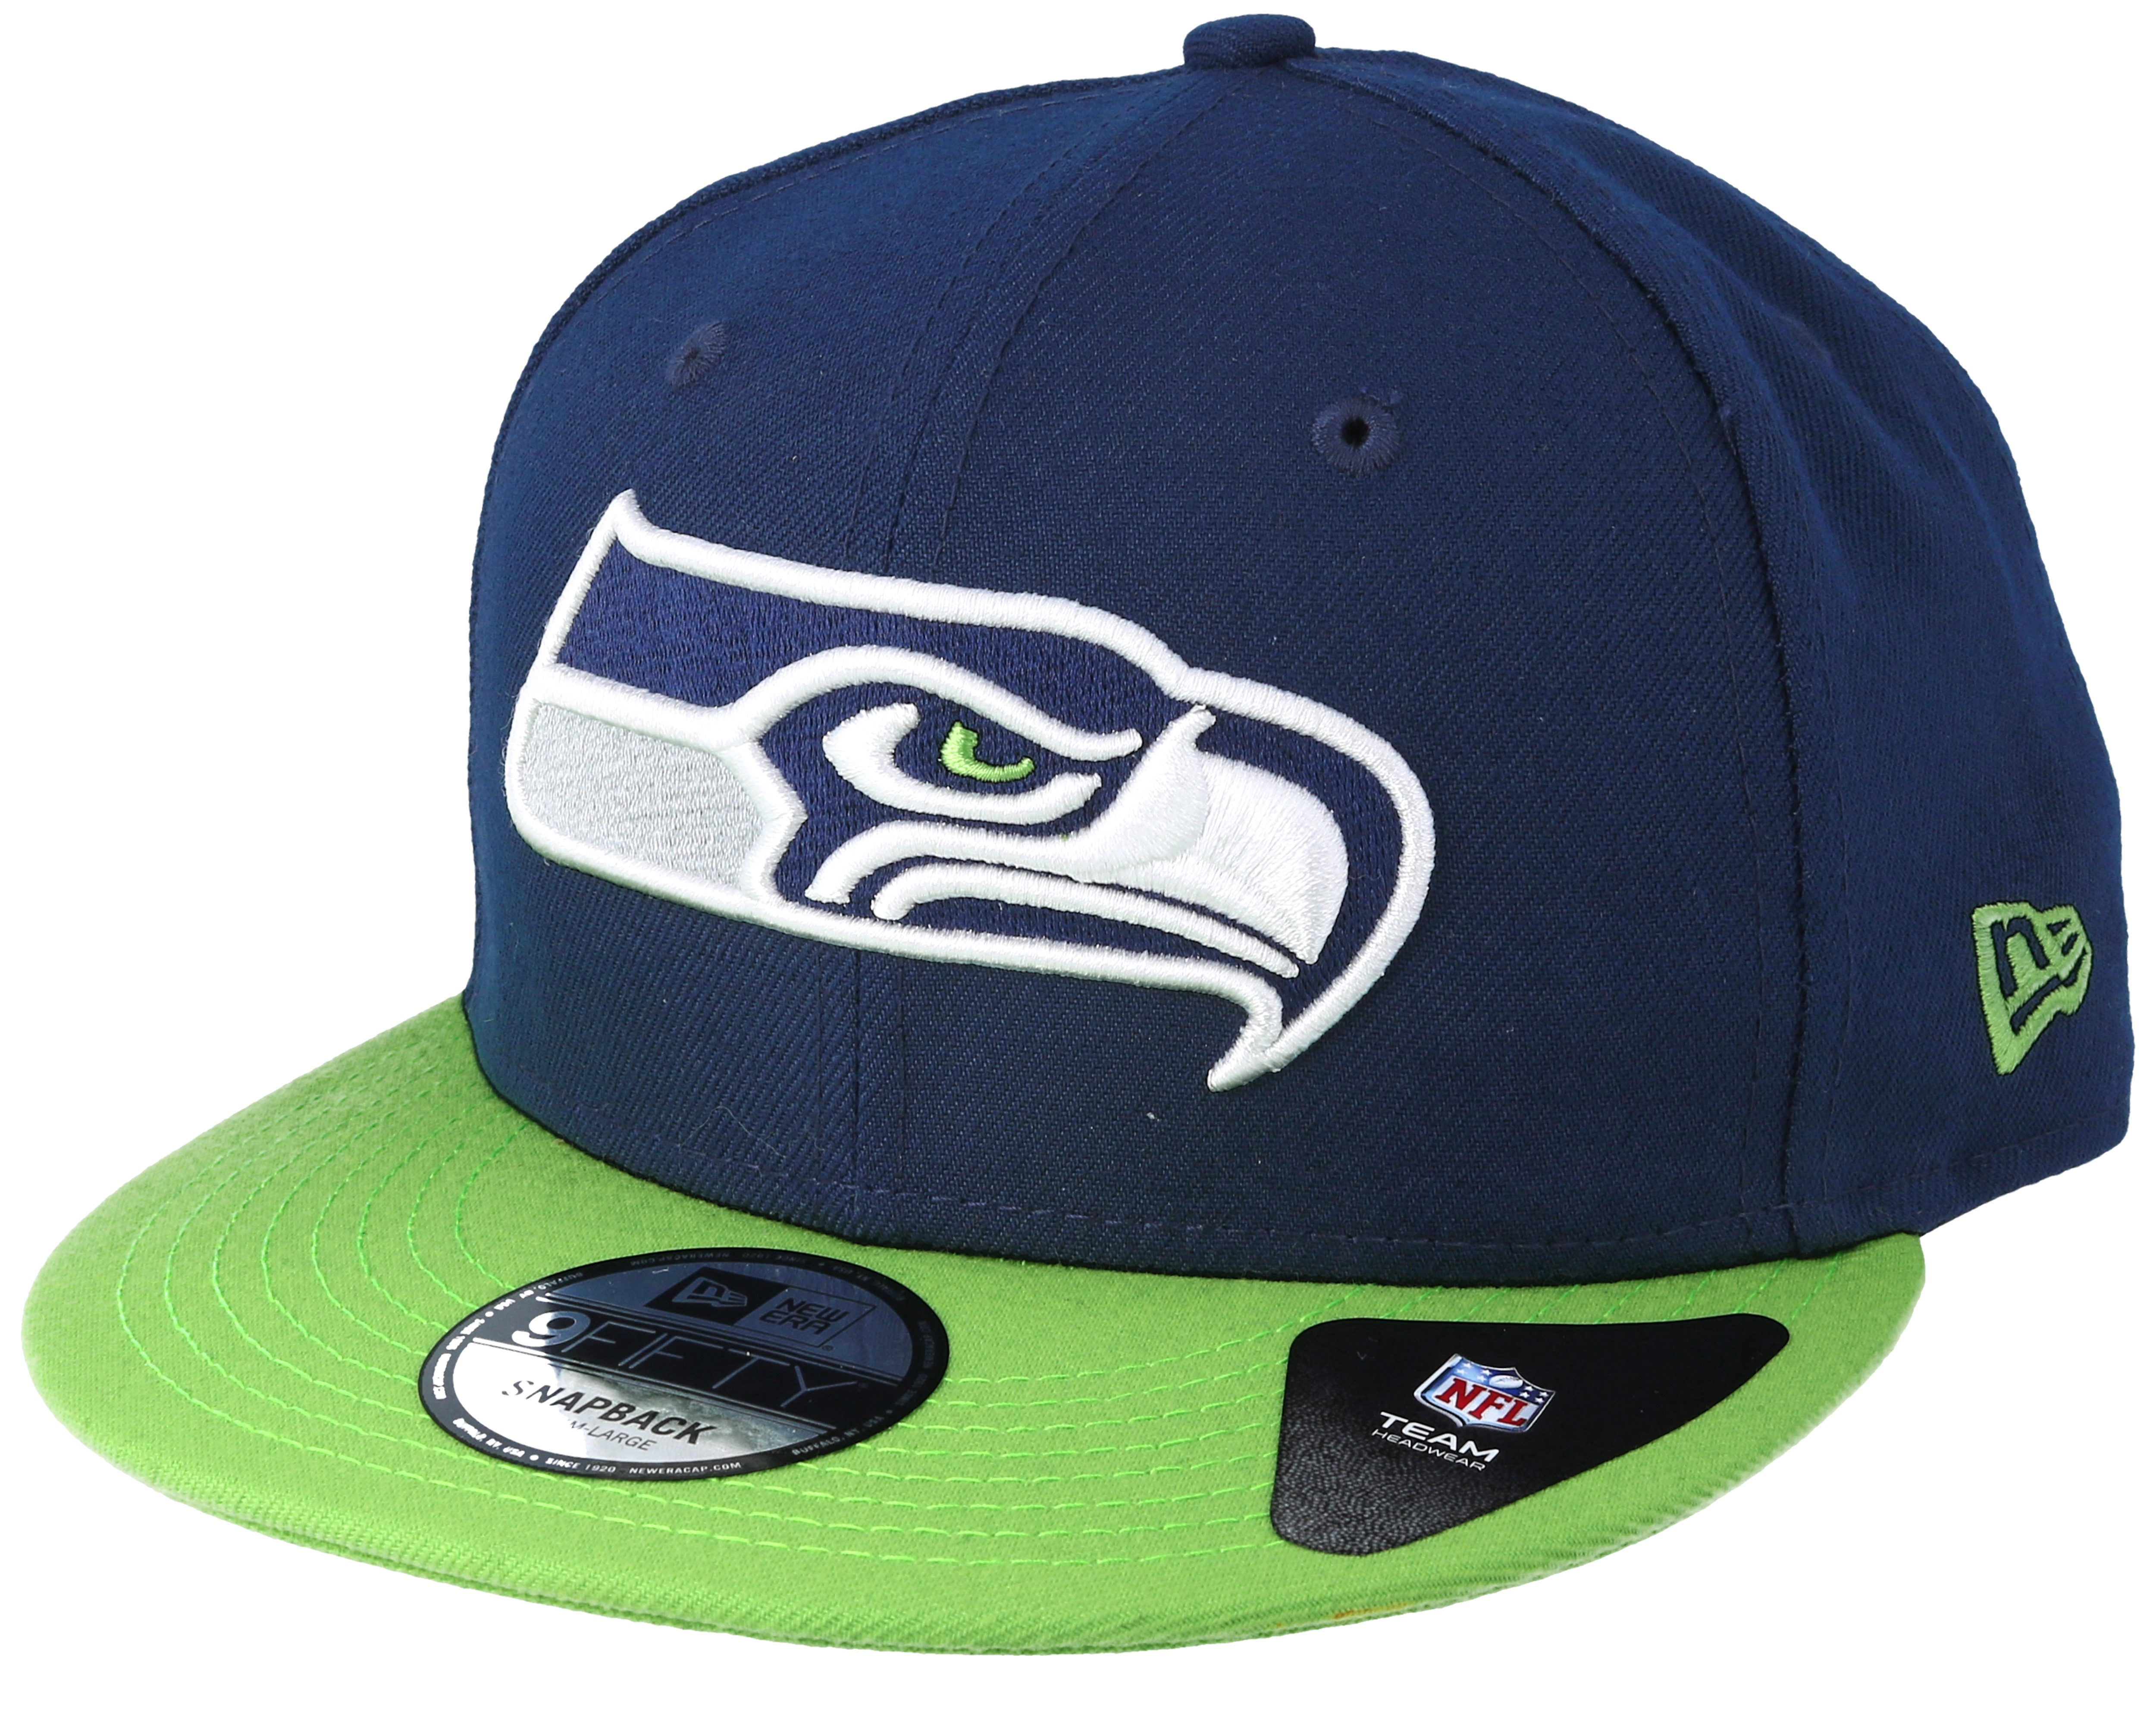 659a2daa75197 Product information Seattle Seahawks Team Navy Snapback - New Era